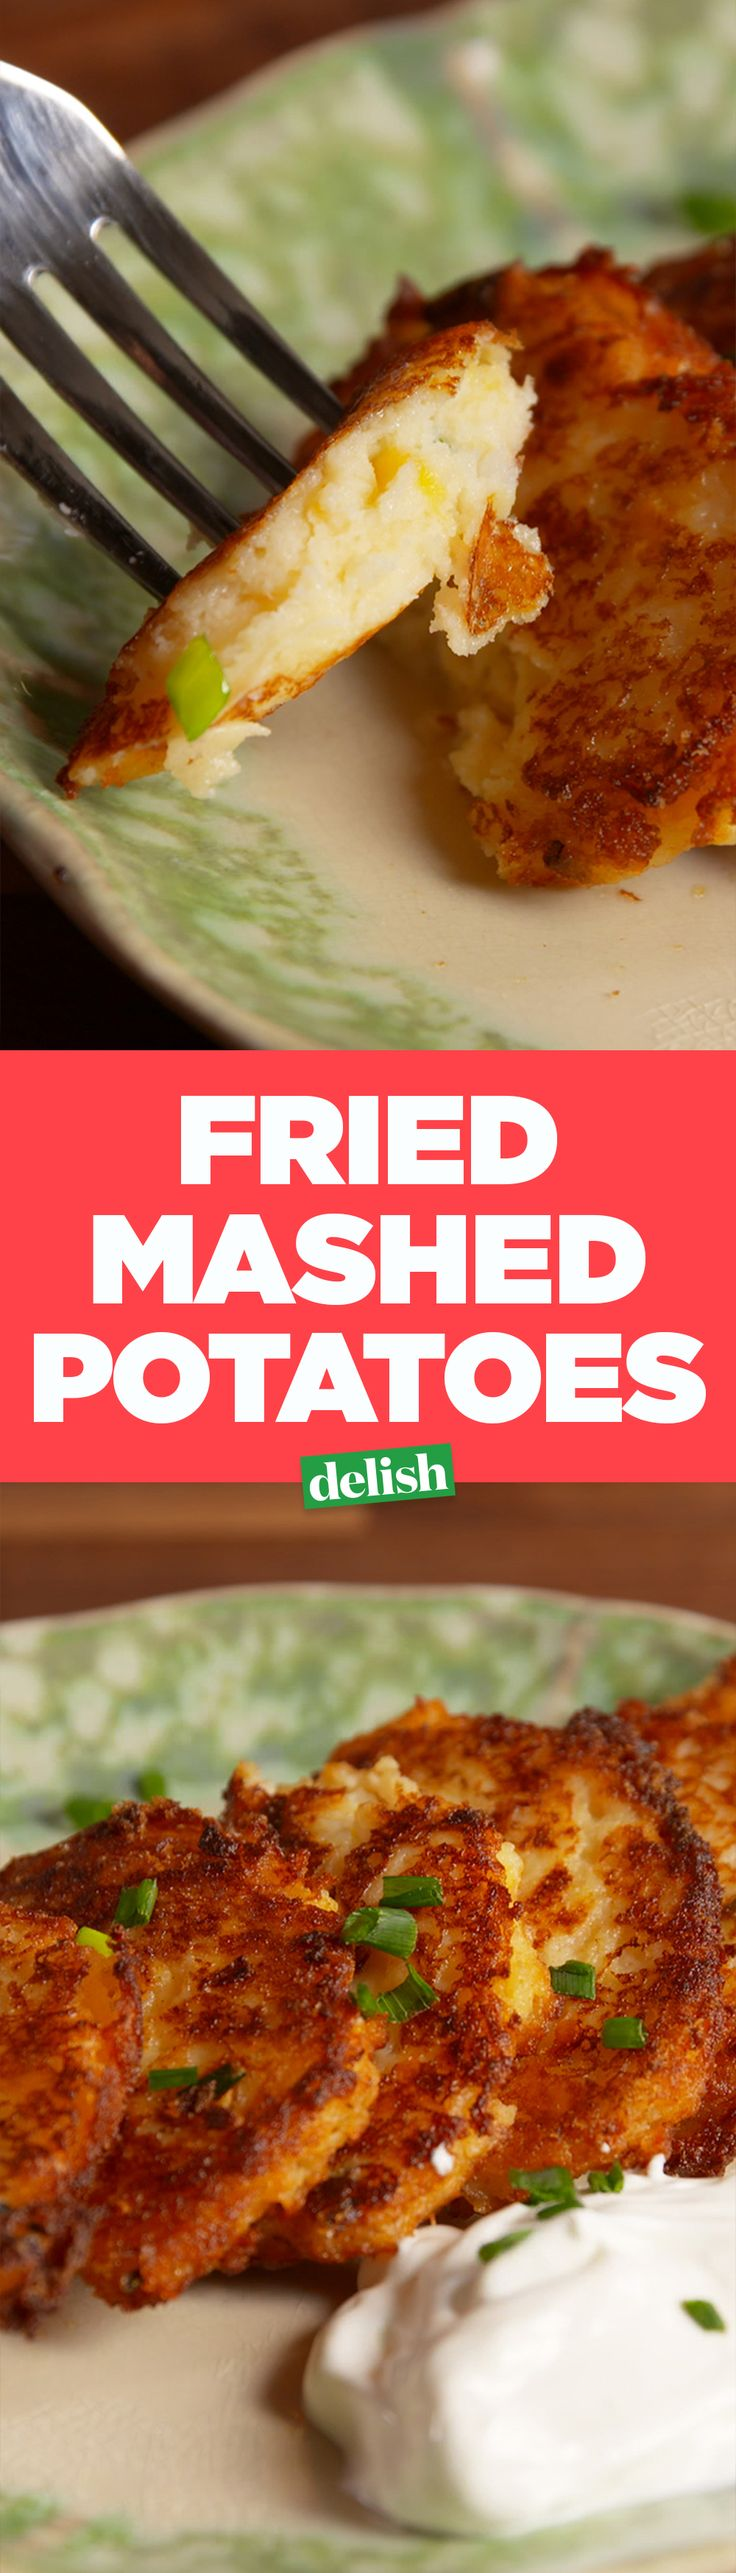 Fried mashed potatoes are the best thing to do with your Thanksgiving leftovers. Get the recipe on Delish.com.